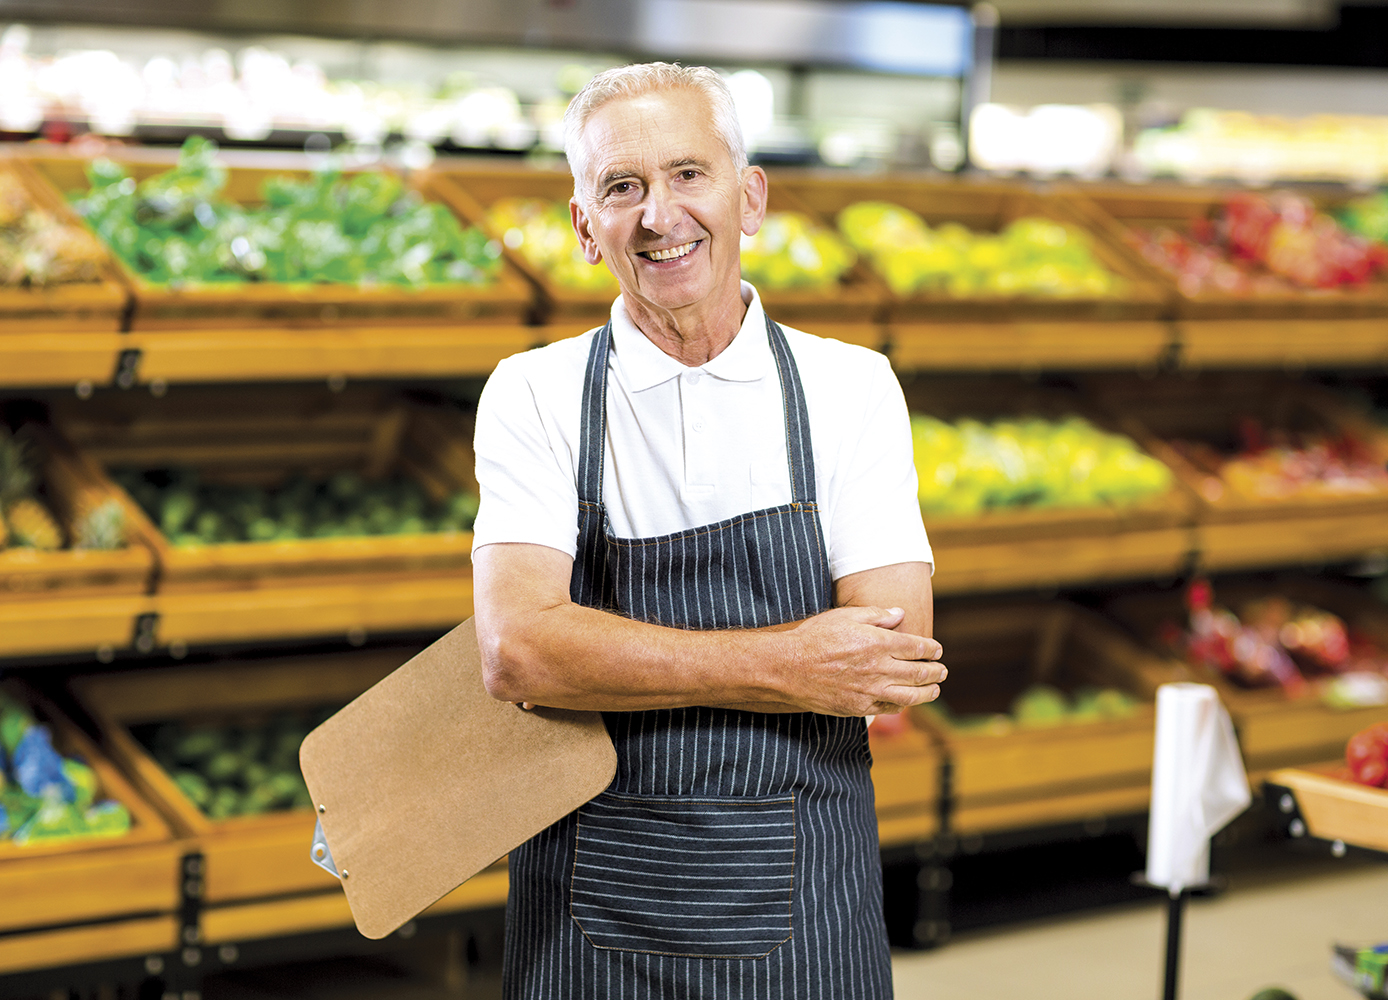 Seniors are Getting Hired Like Crazy for These Part-Time Jobs